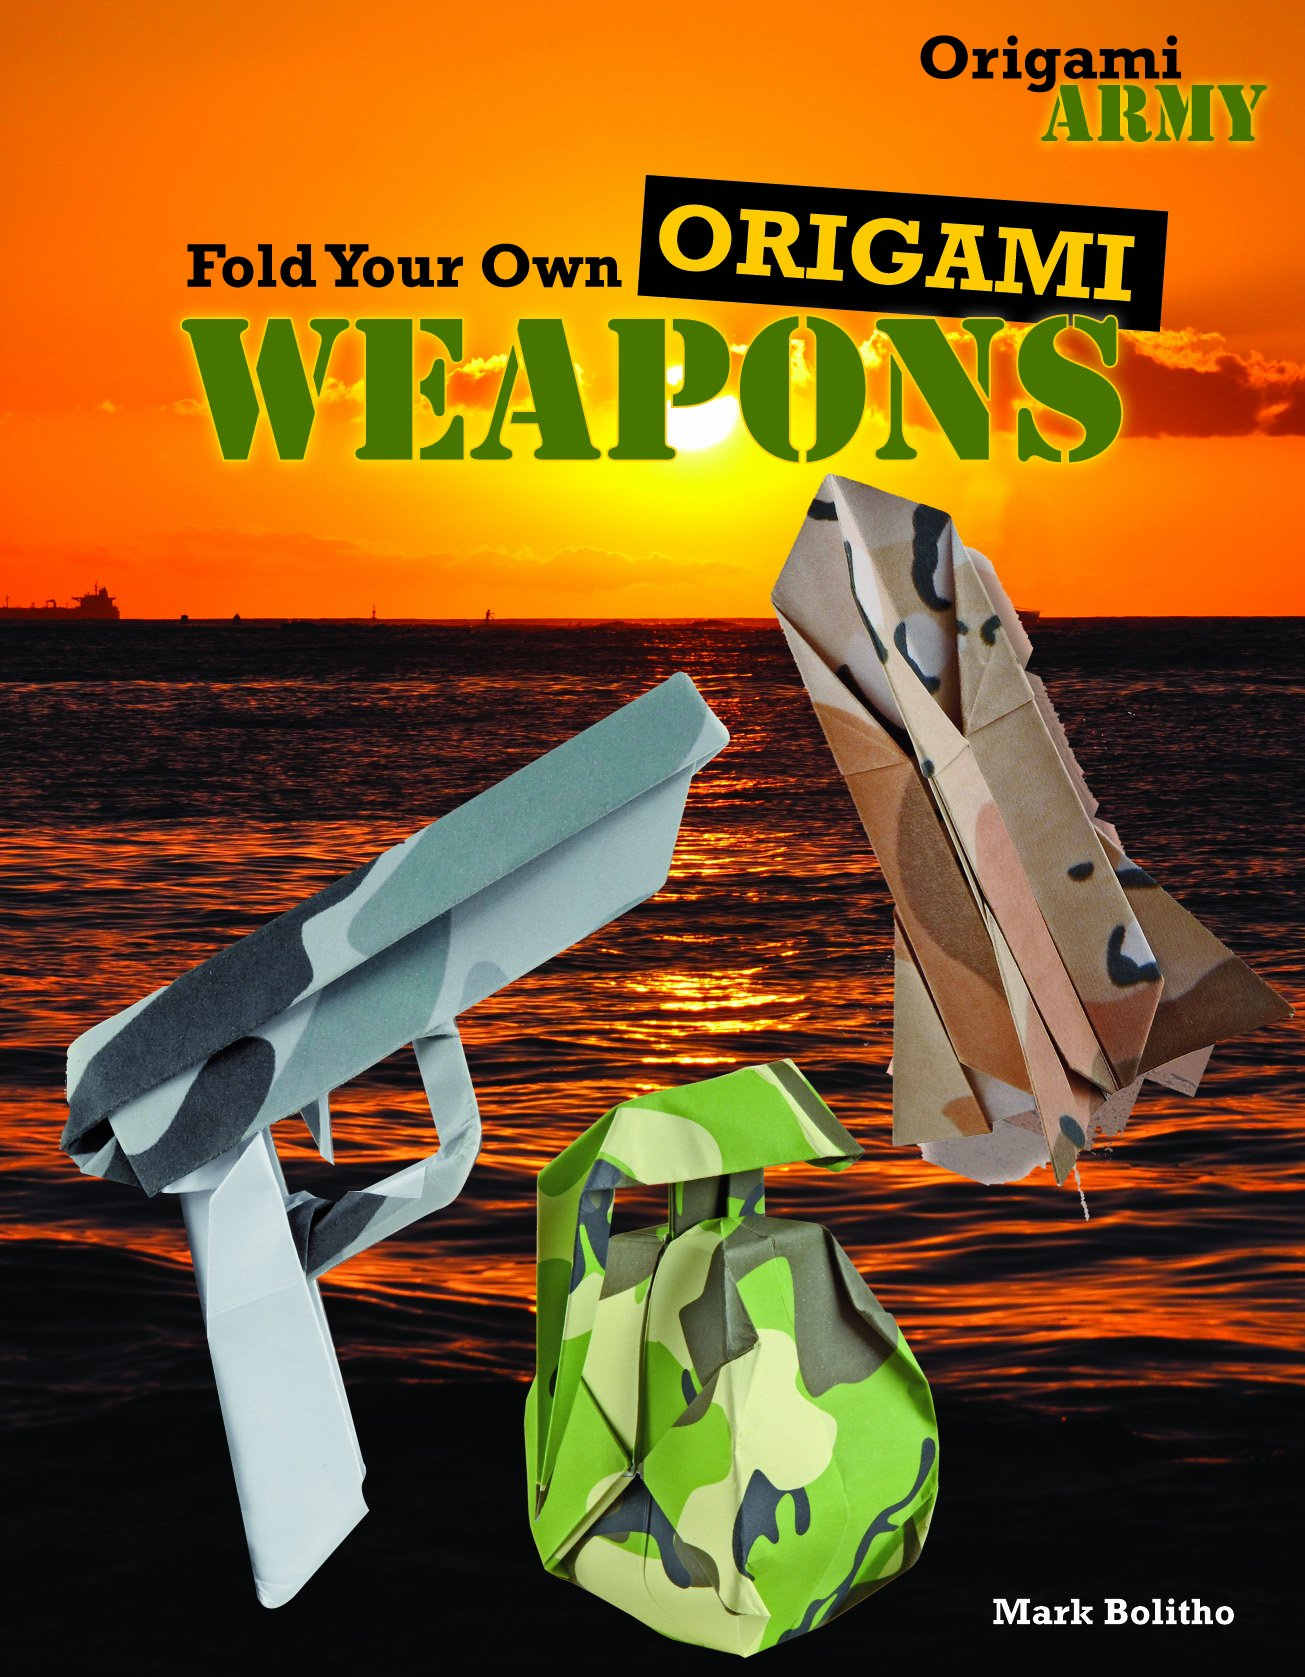 Fold Your Own Origami Weapons Origami Army Mark Bolitho